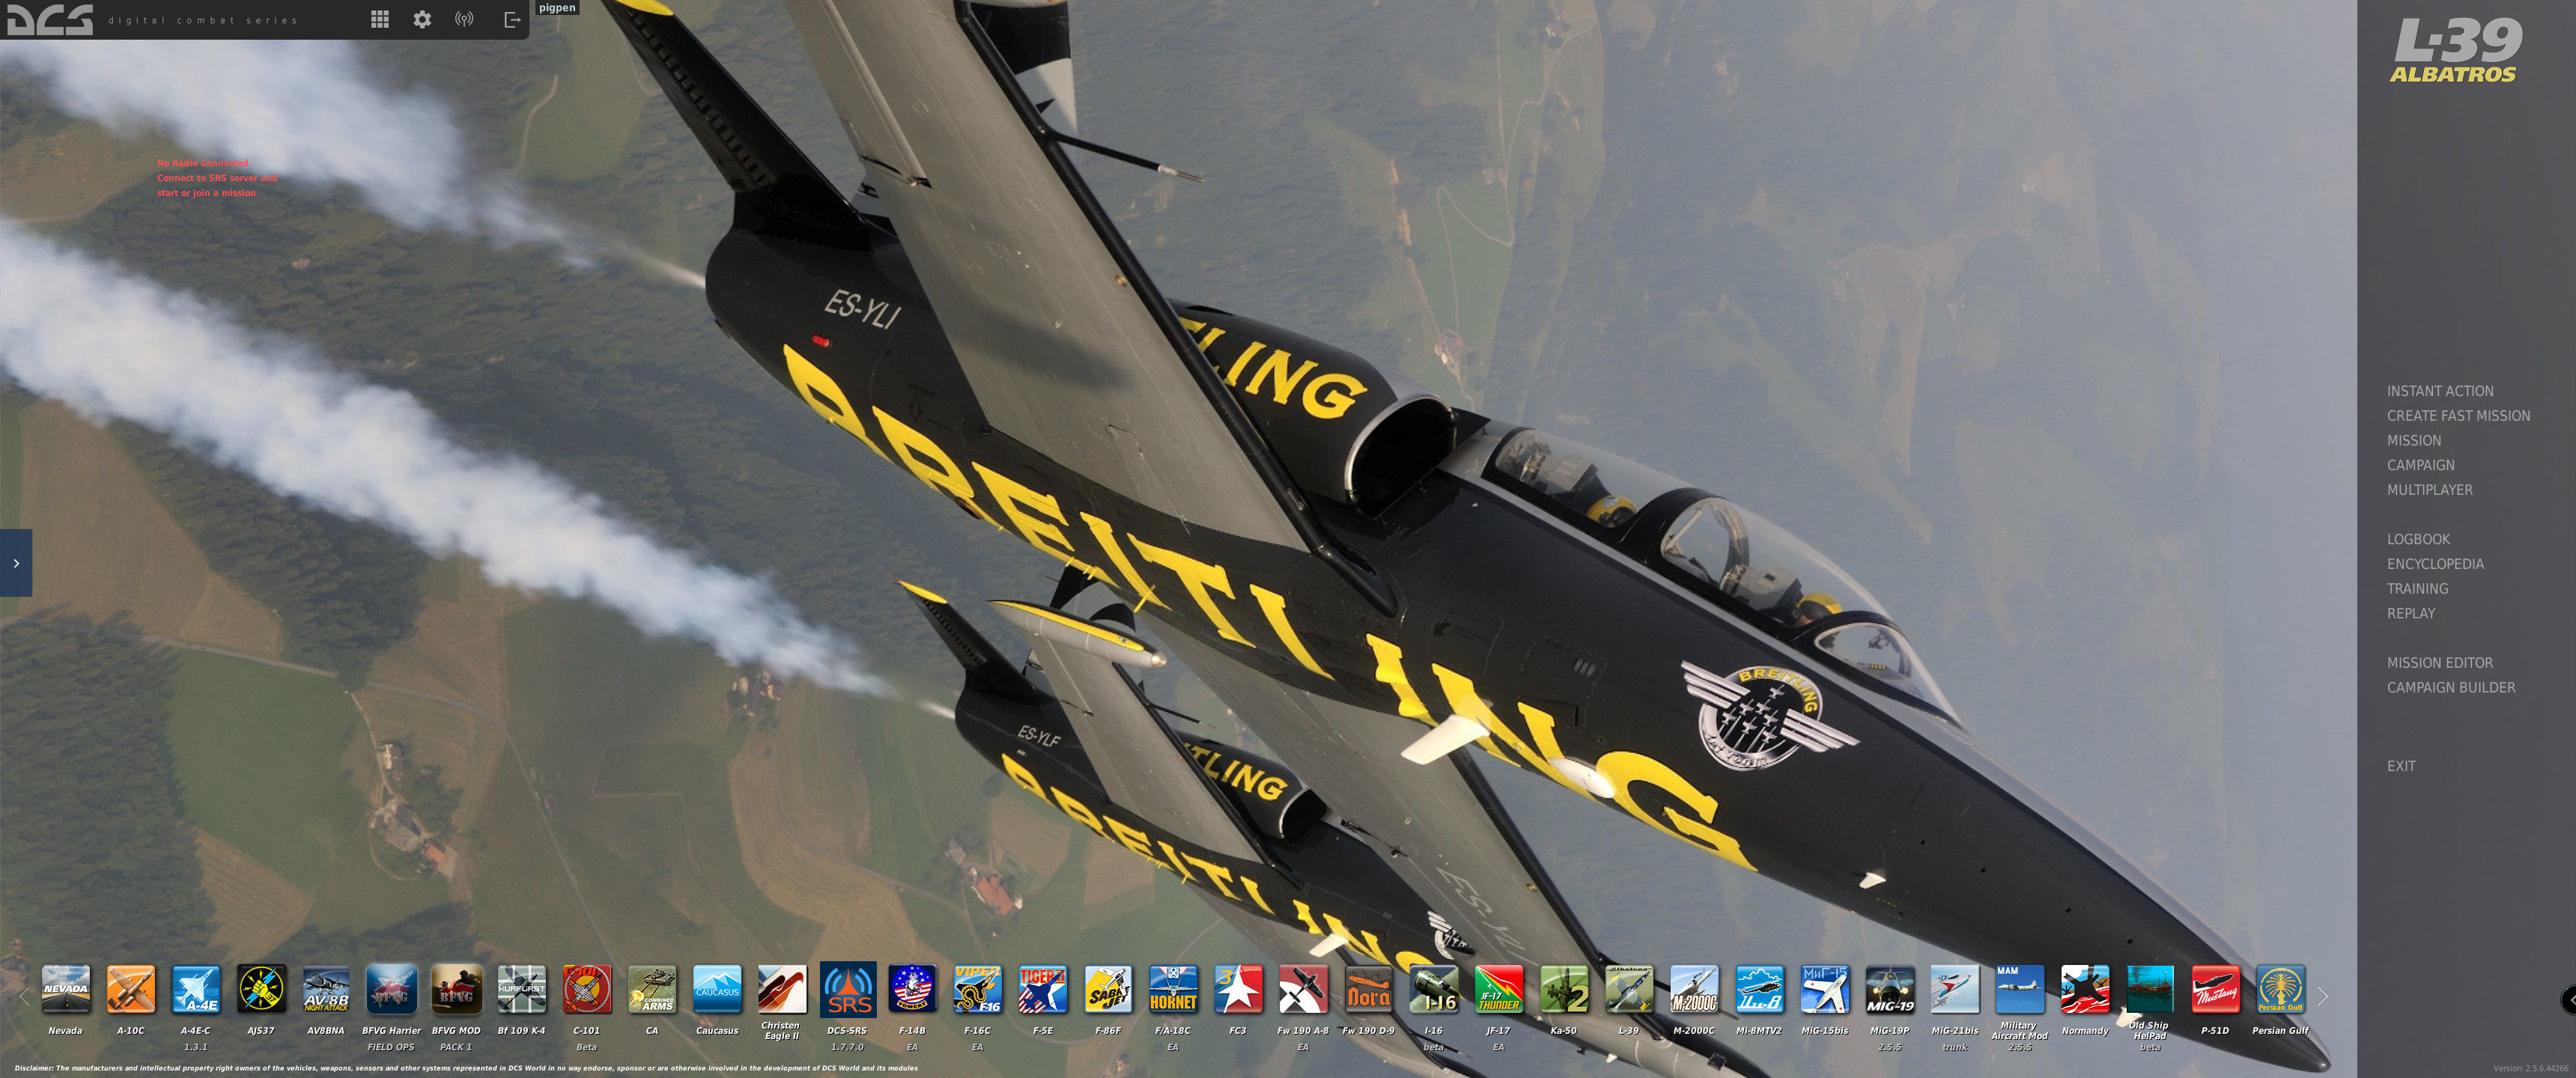 L-39C New wallpaper and theme music